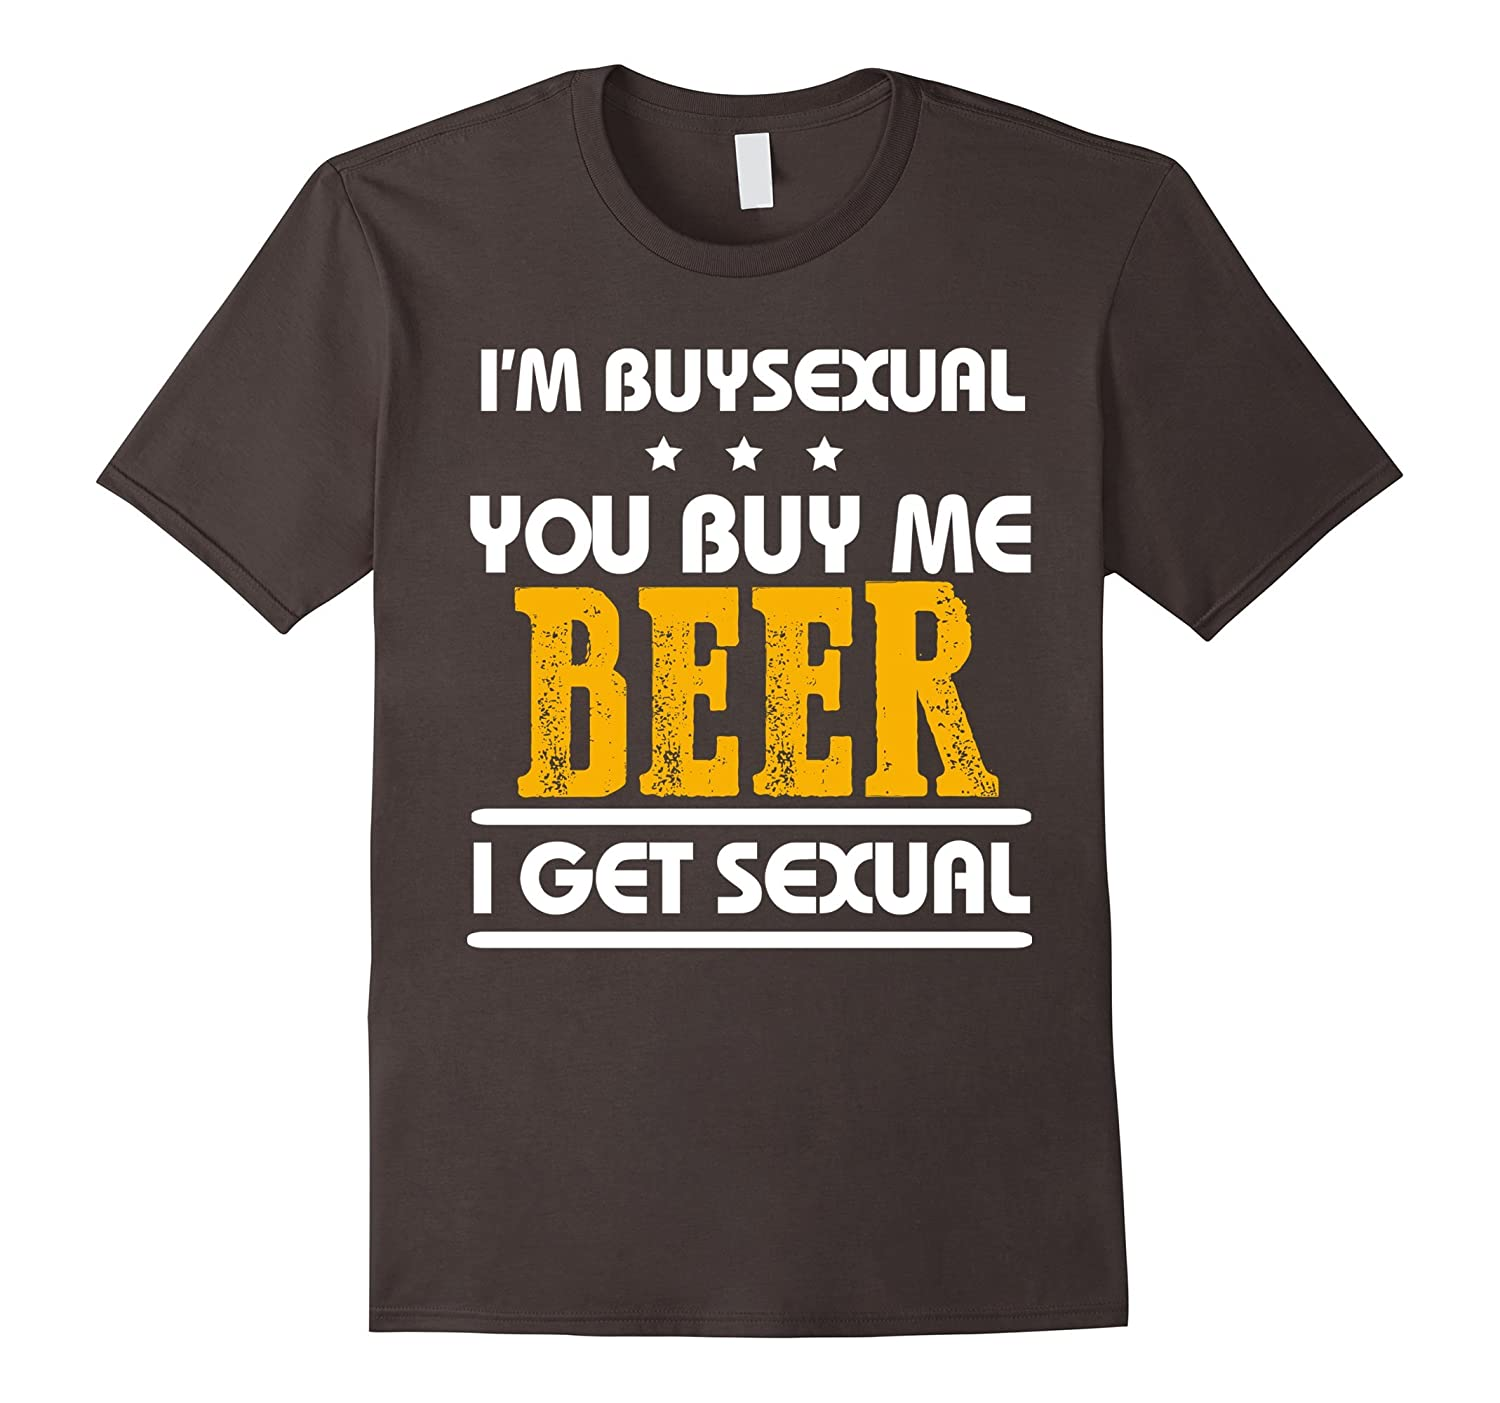 Funny t shirt I'm Buysexual You Buy Me Beer I Get Sexual